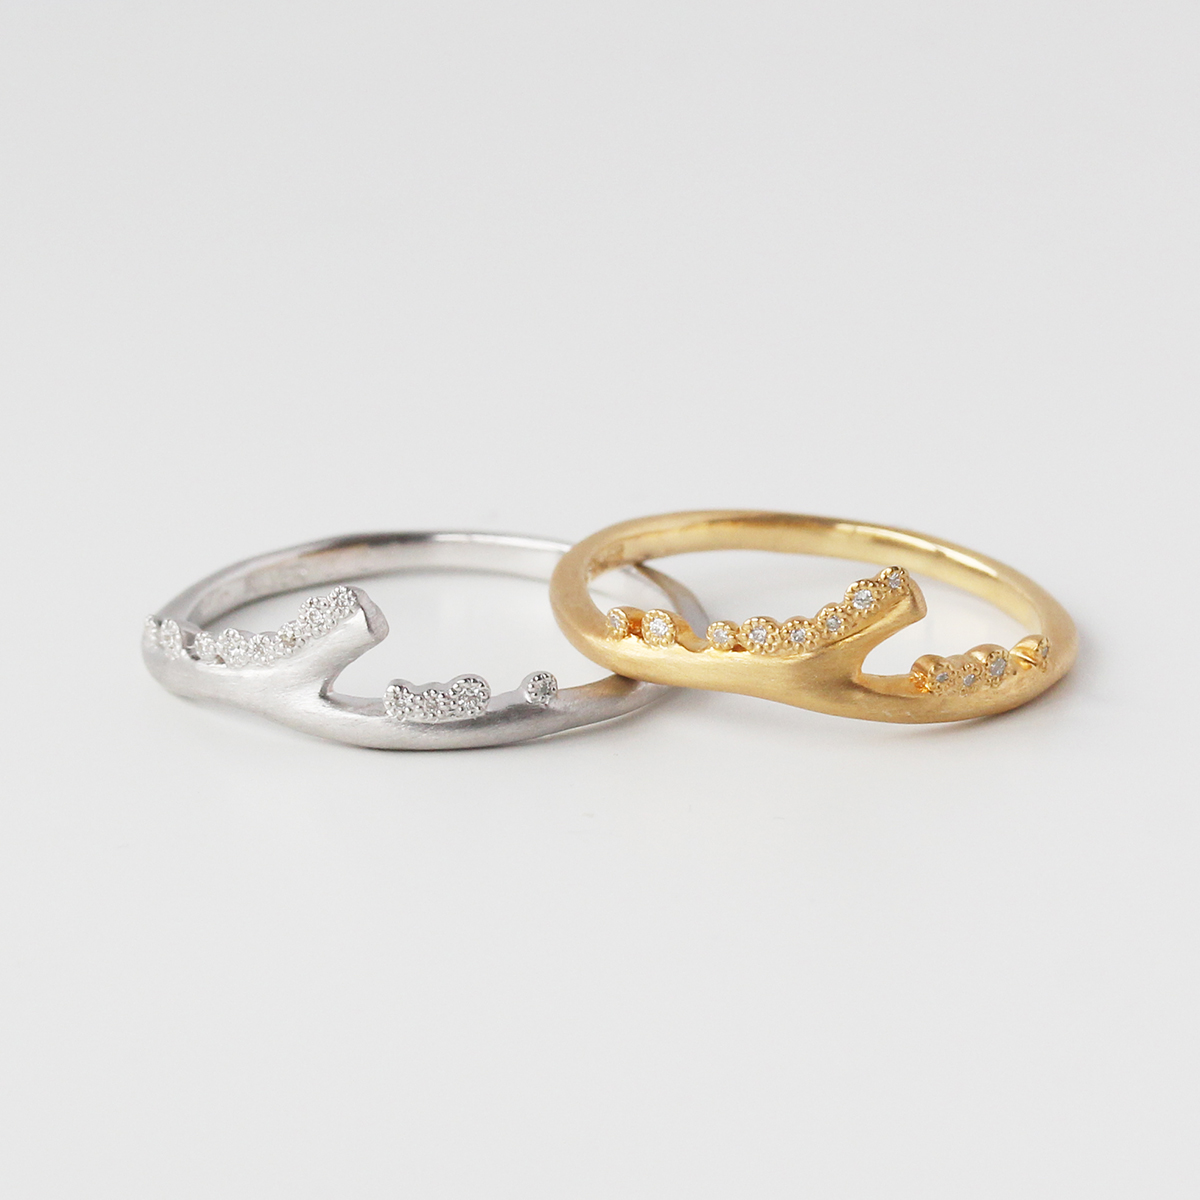 Marriage Ring_MRM067